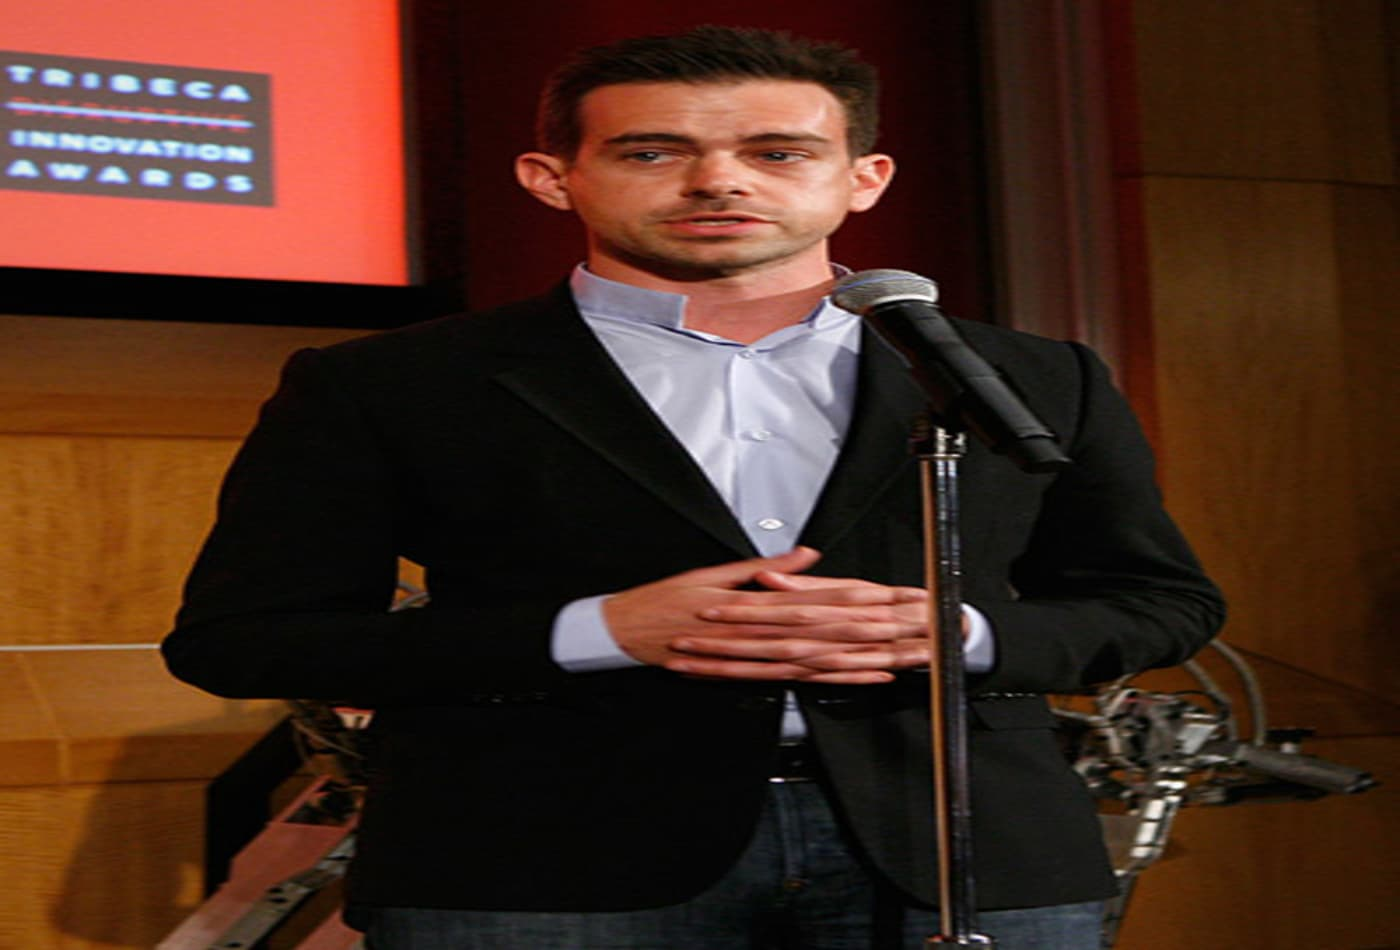 best-dressed-ceos-jack-dorsey.jpg